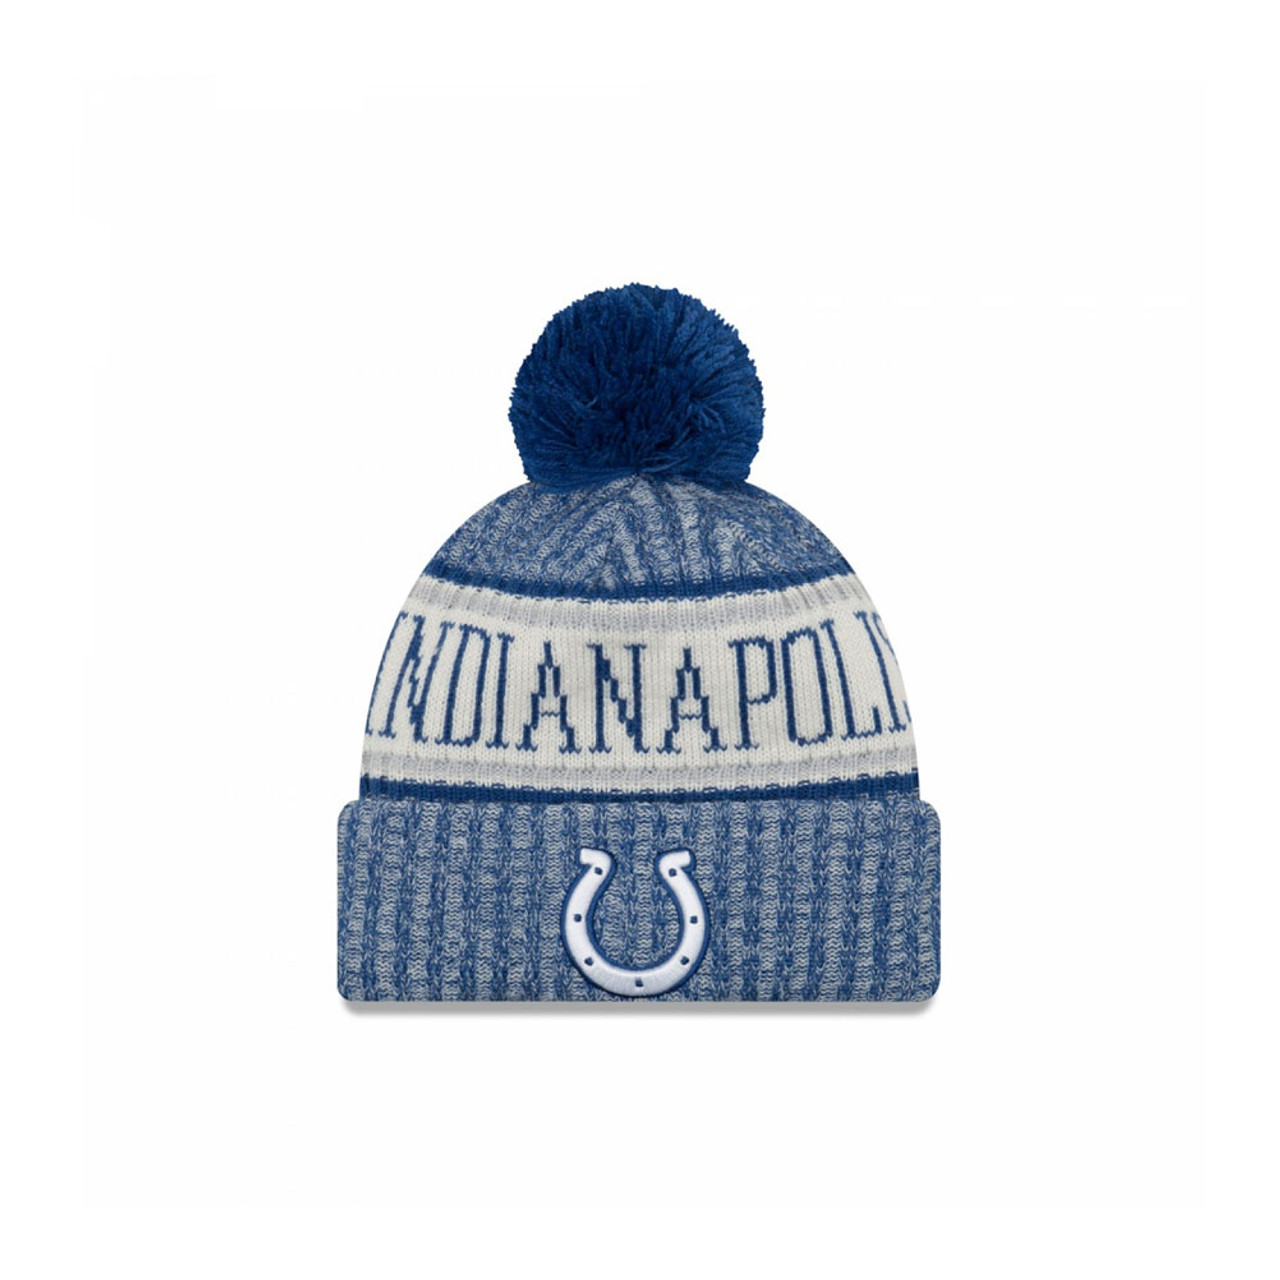 reputable site 5dd88 d8064 ... nfl 2018 beanie unisex hat  1176818713093.1538487063c2imbypasson   1176818713093.1538487063c2imbypasson  new england patriots ...